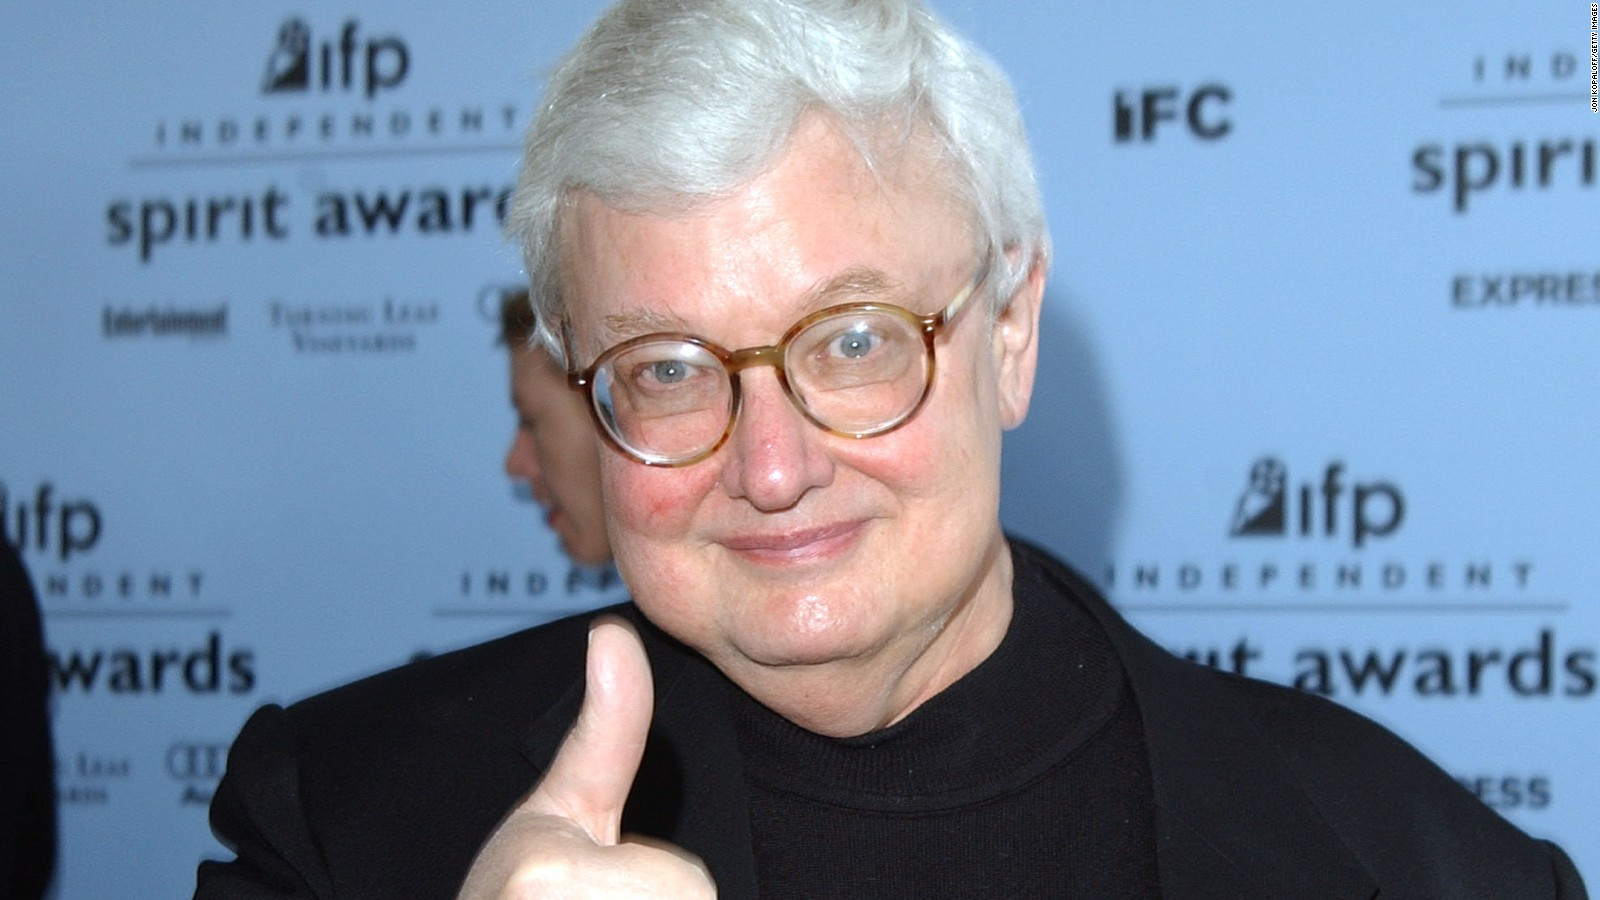 Reading Roger Eberts Tribute To James >> Roger Ebert Renowned Film Critic Dies At Age 70 Cnn